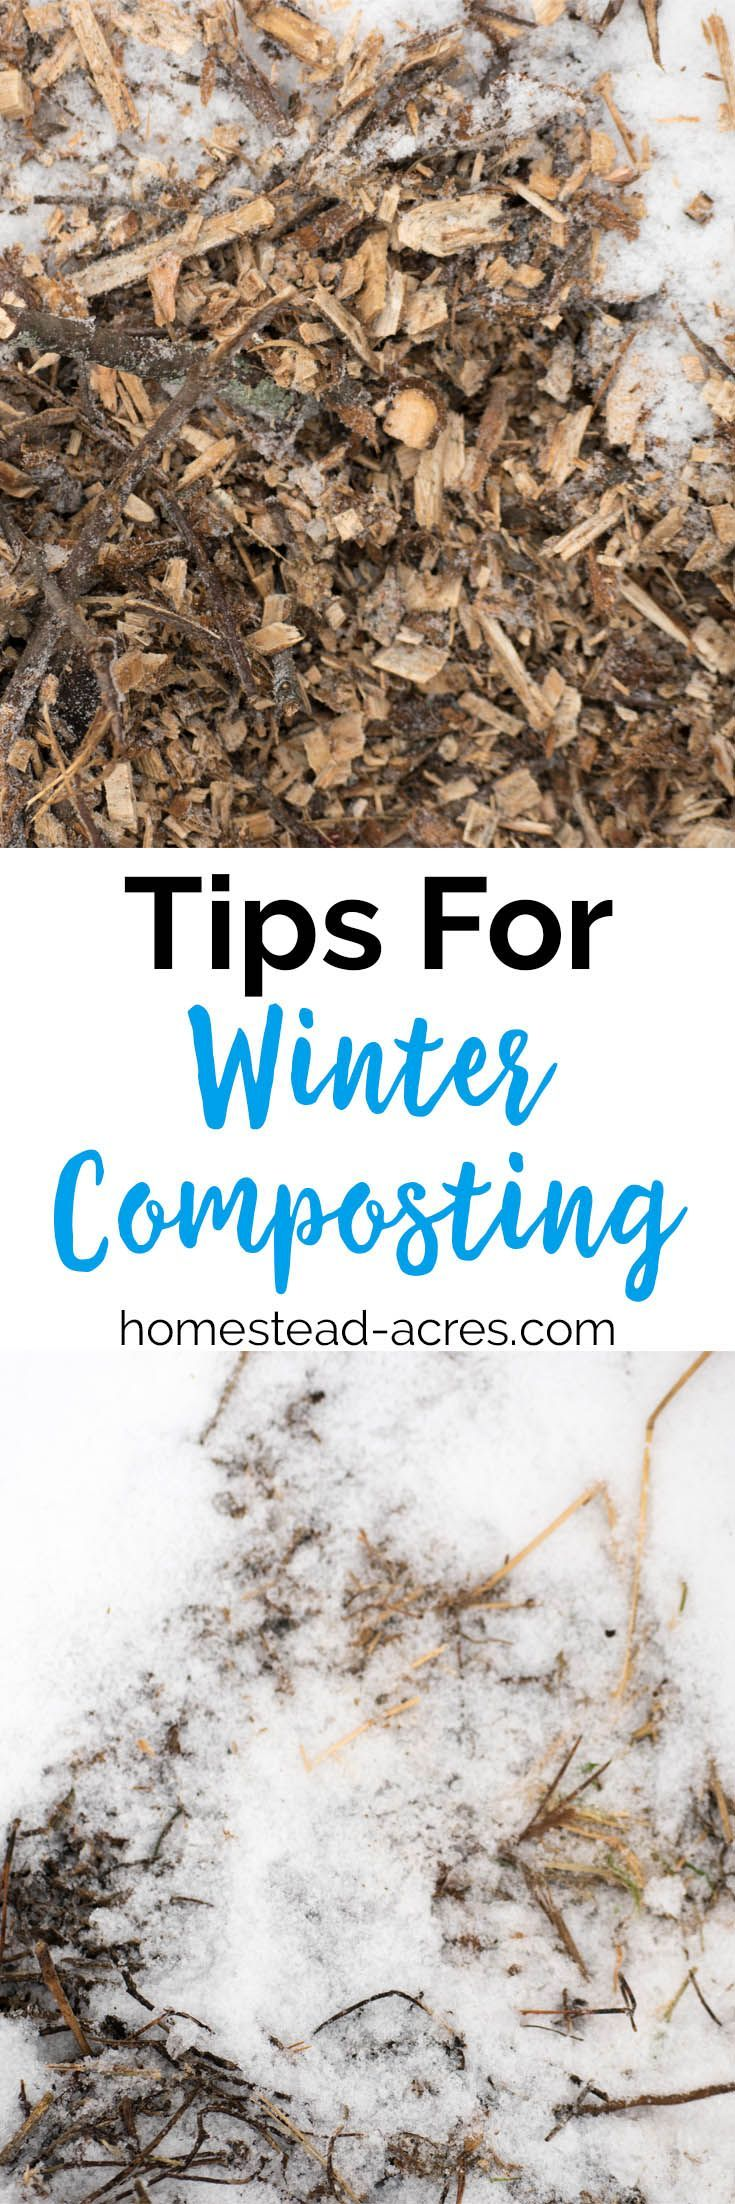 Winter composting tips for beginners. Learn how to make compost even in cold weather so you have nutrient rich fertilizer for your spring garden. #gardening #composting #homesteading https://www.homestead-acres.com/winter-composting-tips/?utm_campaign=coschedule&utm_source=pinterest&utm_medium=Kim Mills   Homestead Acres   Homeschooling + Homesteading Tips&utm_content=Winter Composting: 5 Tips To Keep Your Compost Pile Active In Cold Weather